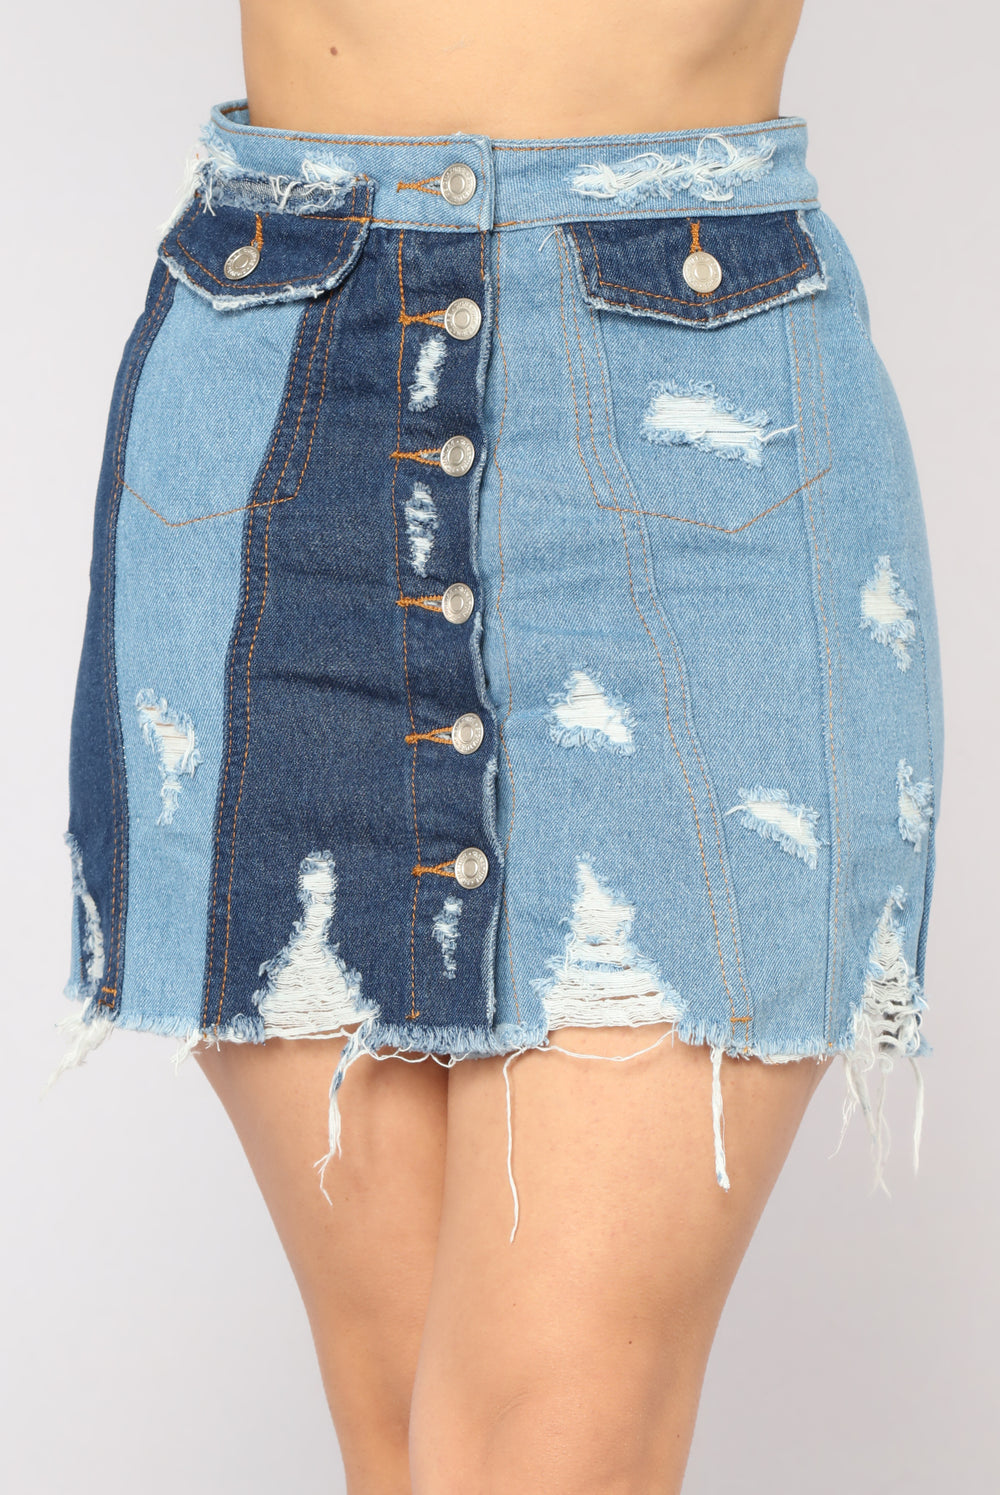 Blocking You Now Denim Skirt - Medium Blue Wash